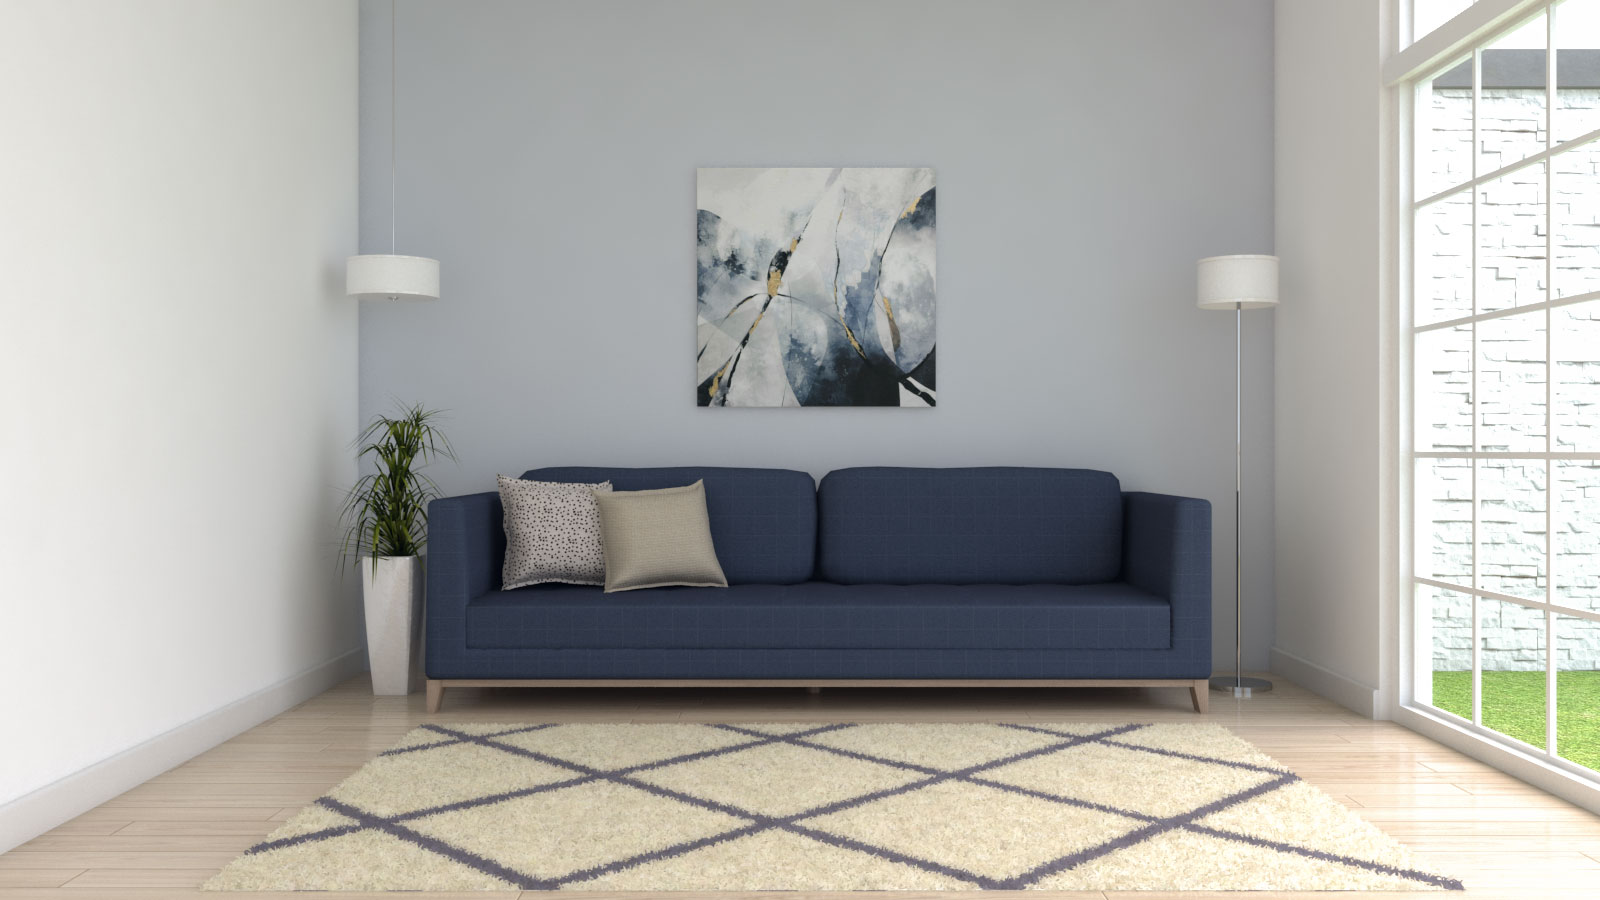 Geometric style cream and blue area rug with blue couch